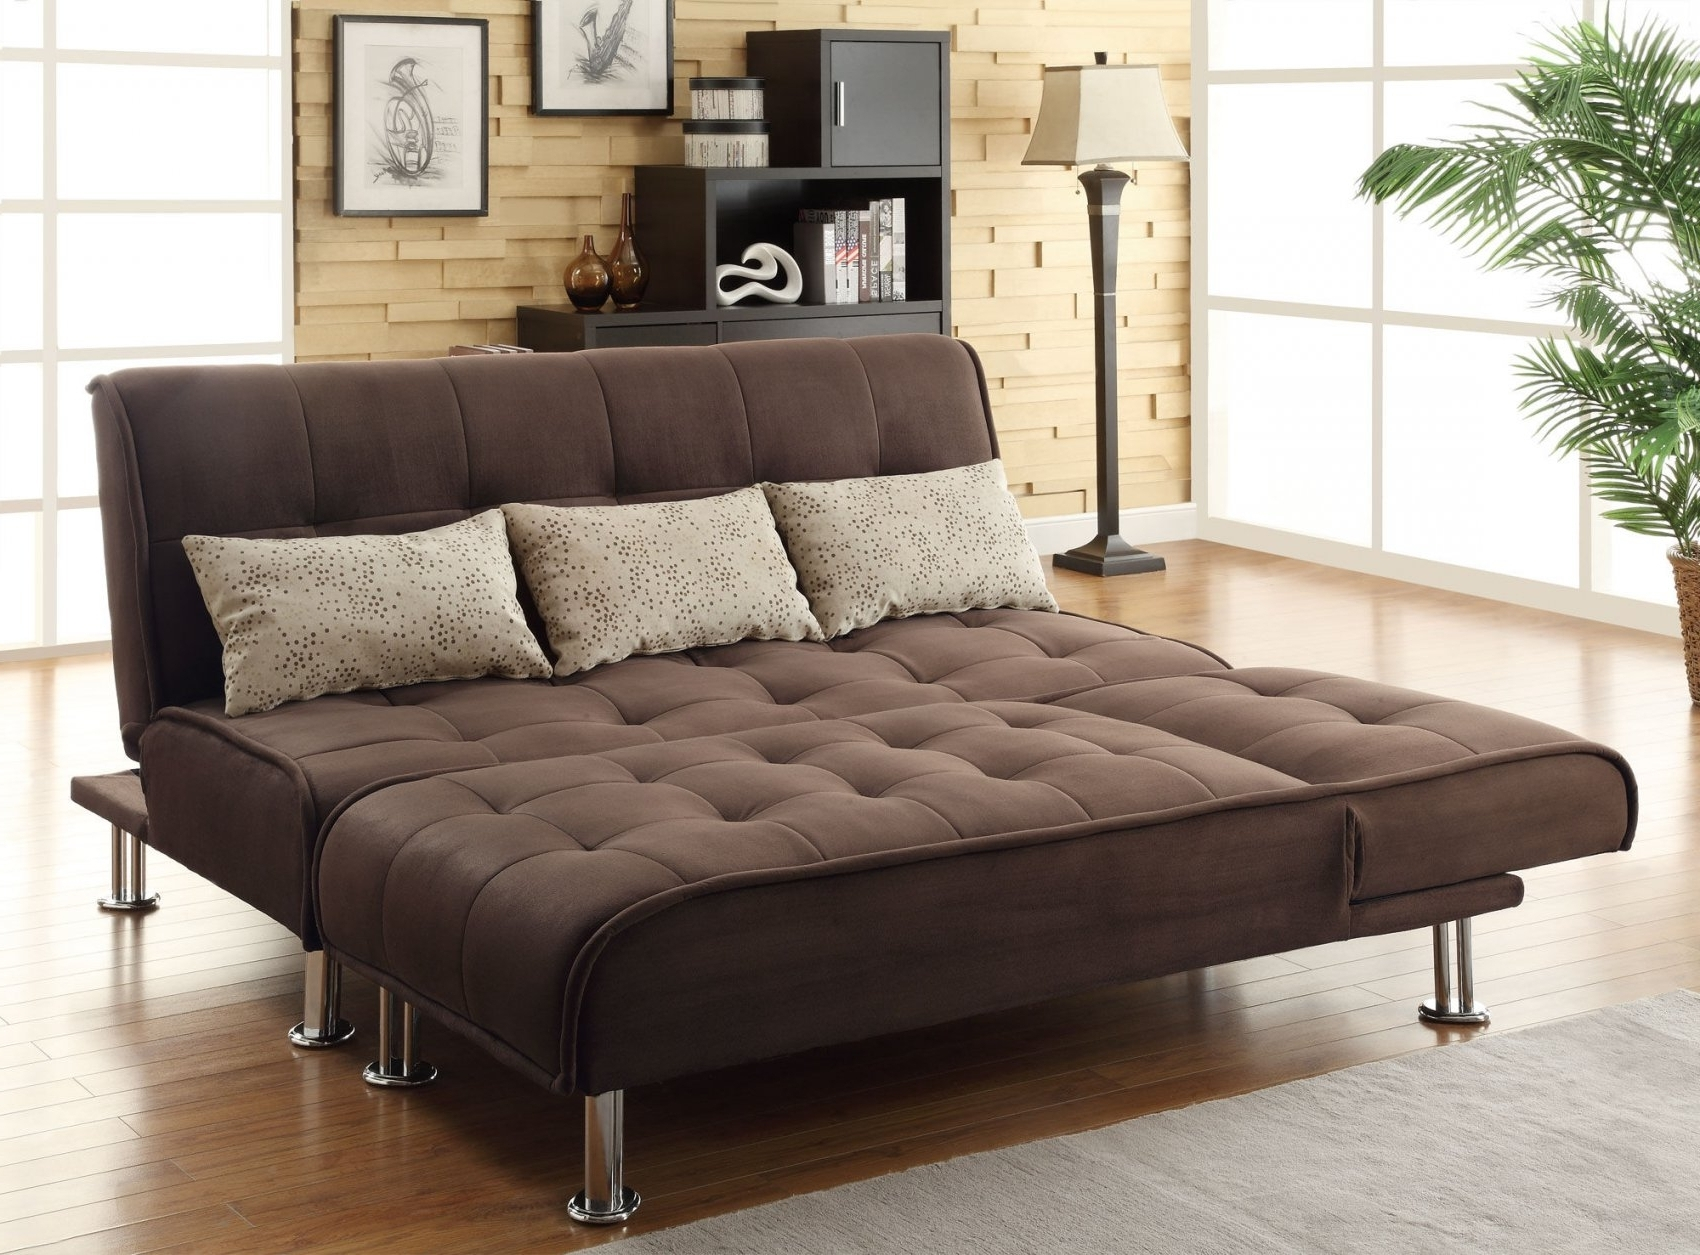 Queen Size Sofas With Most Popular Queen Size Convertible Sofa Bed 46 About Remodel Pepperfry (Gallery 4 of 20)